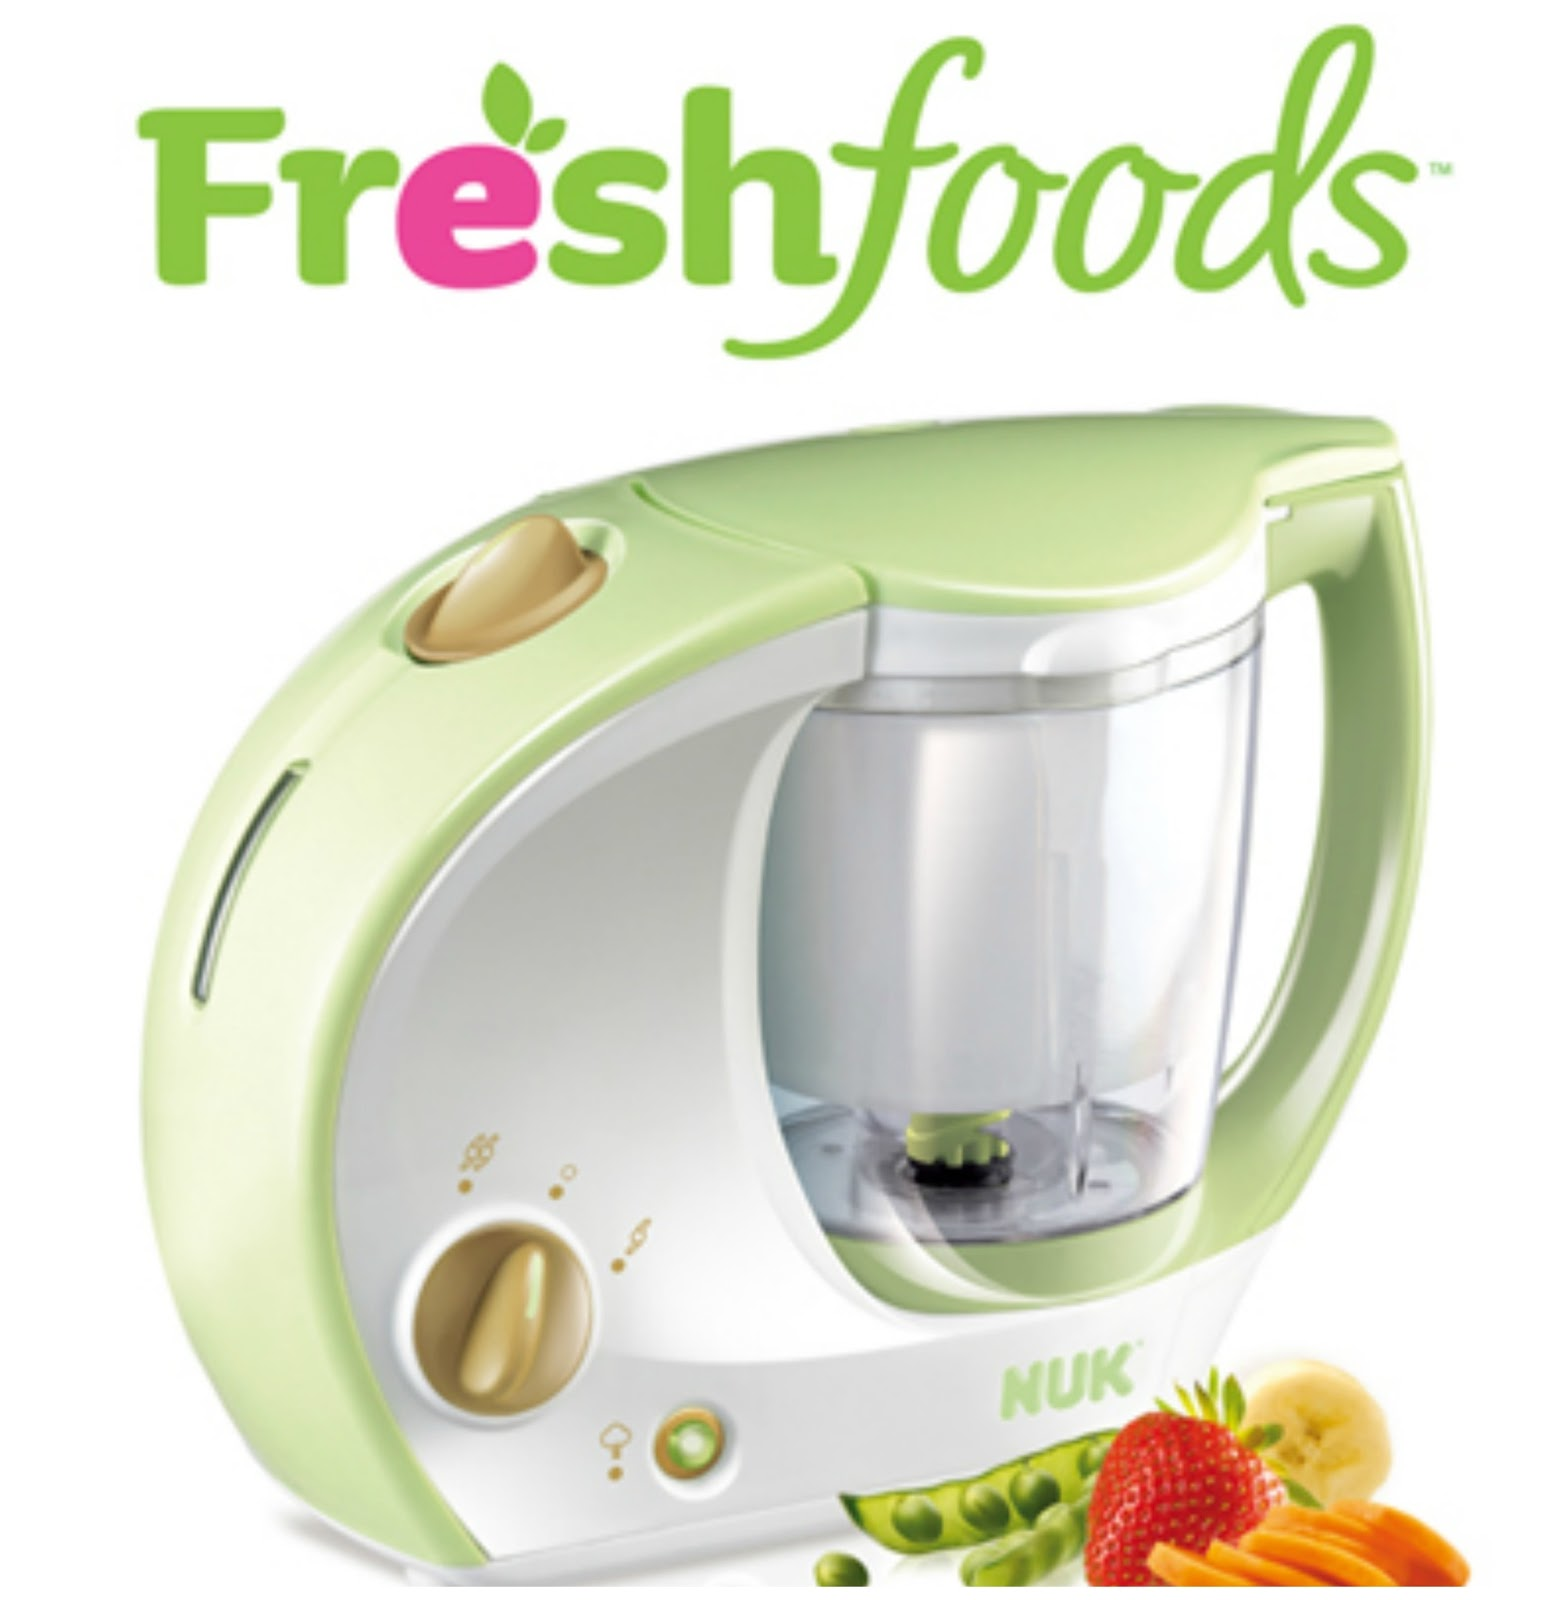 Nuk Freshfoods Cook-n-Blend Baby Food Maker Review - Opera Singer in ...